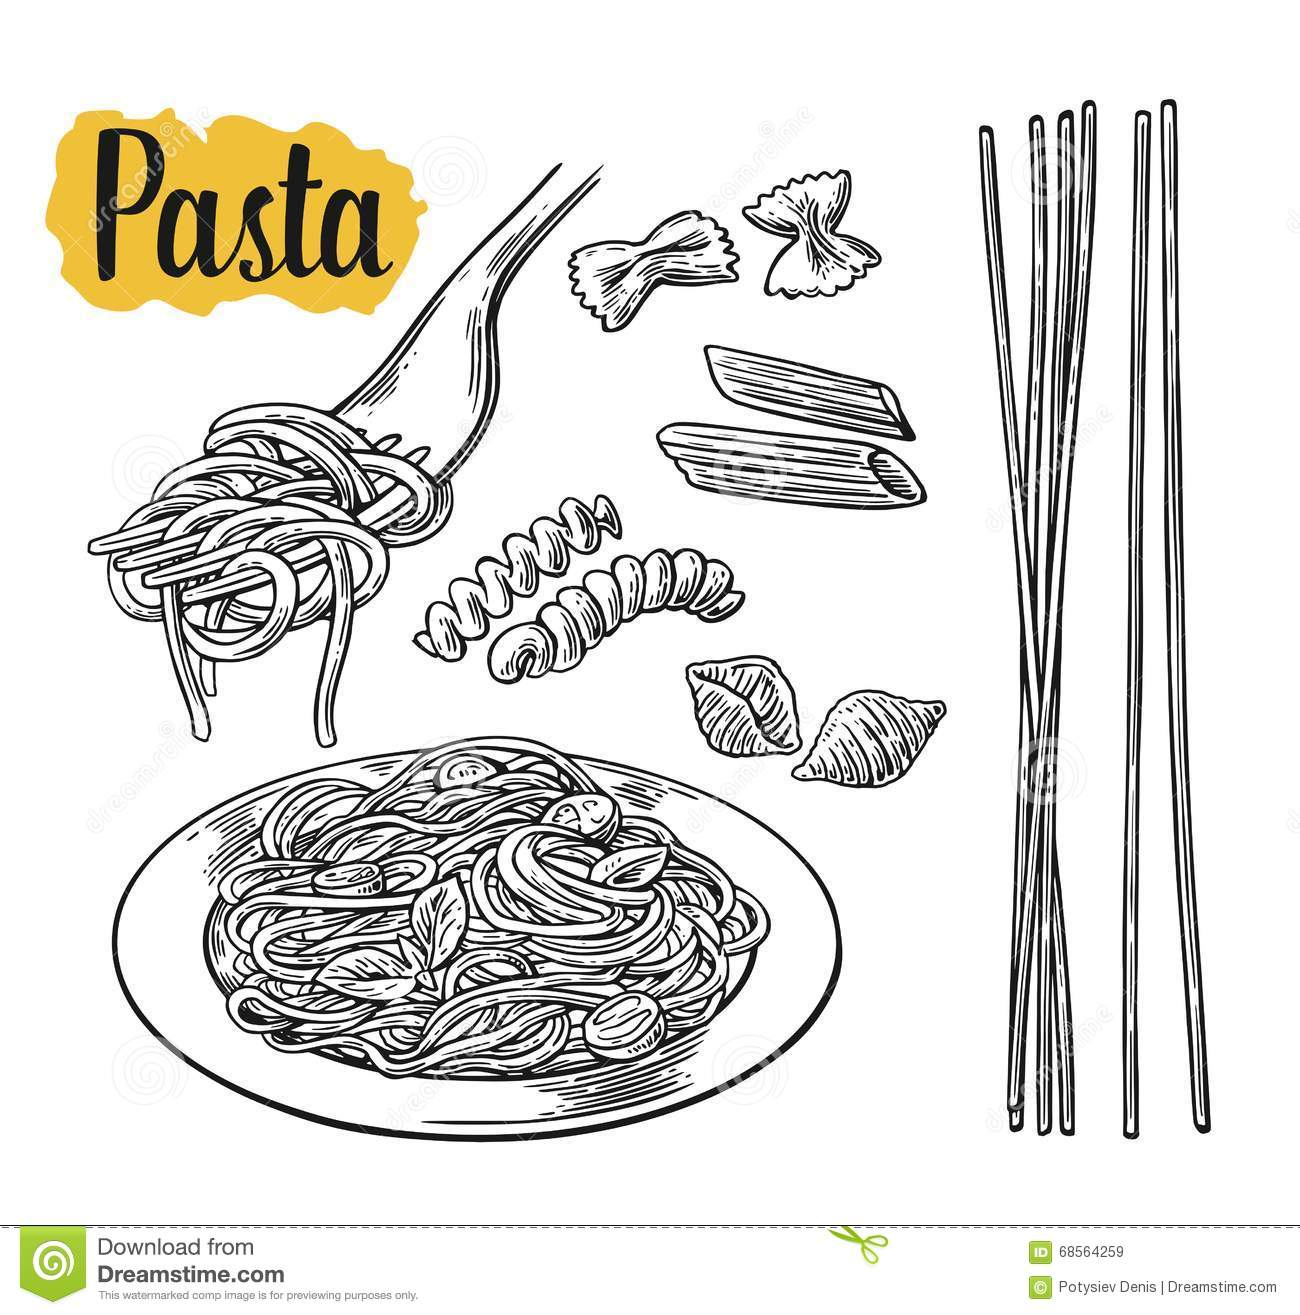 Pasta illustration  Etsy